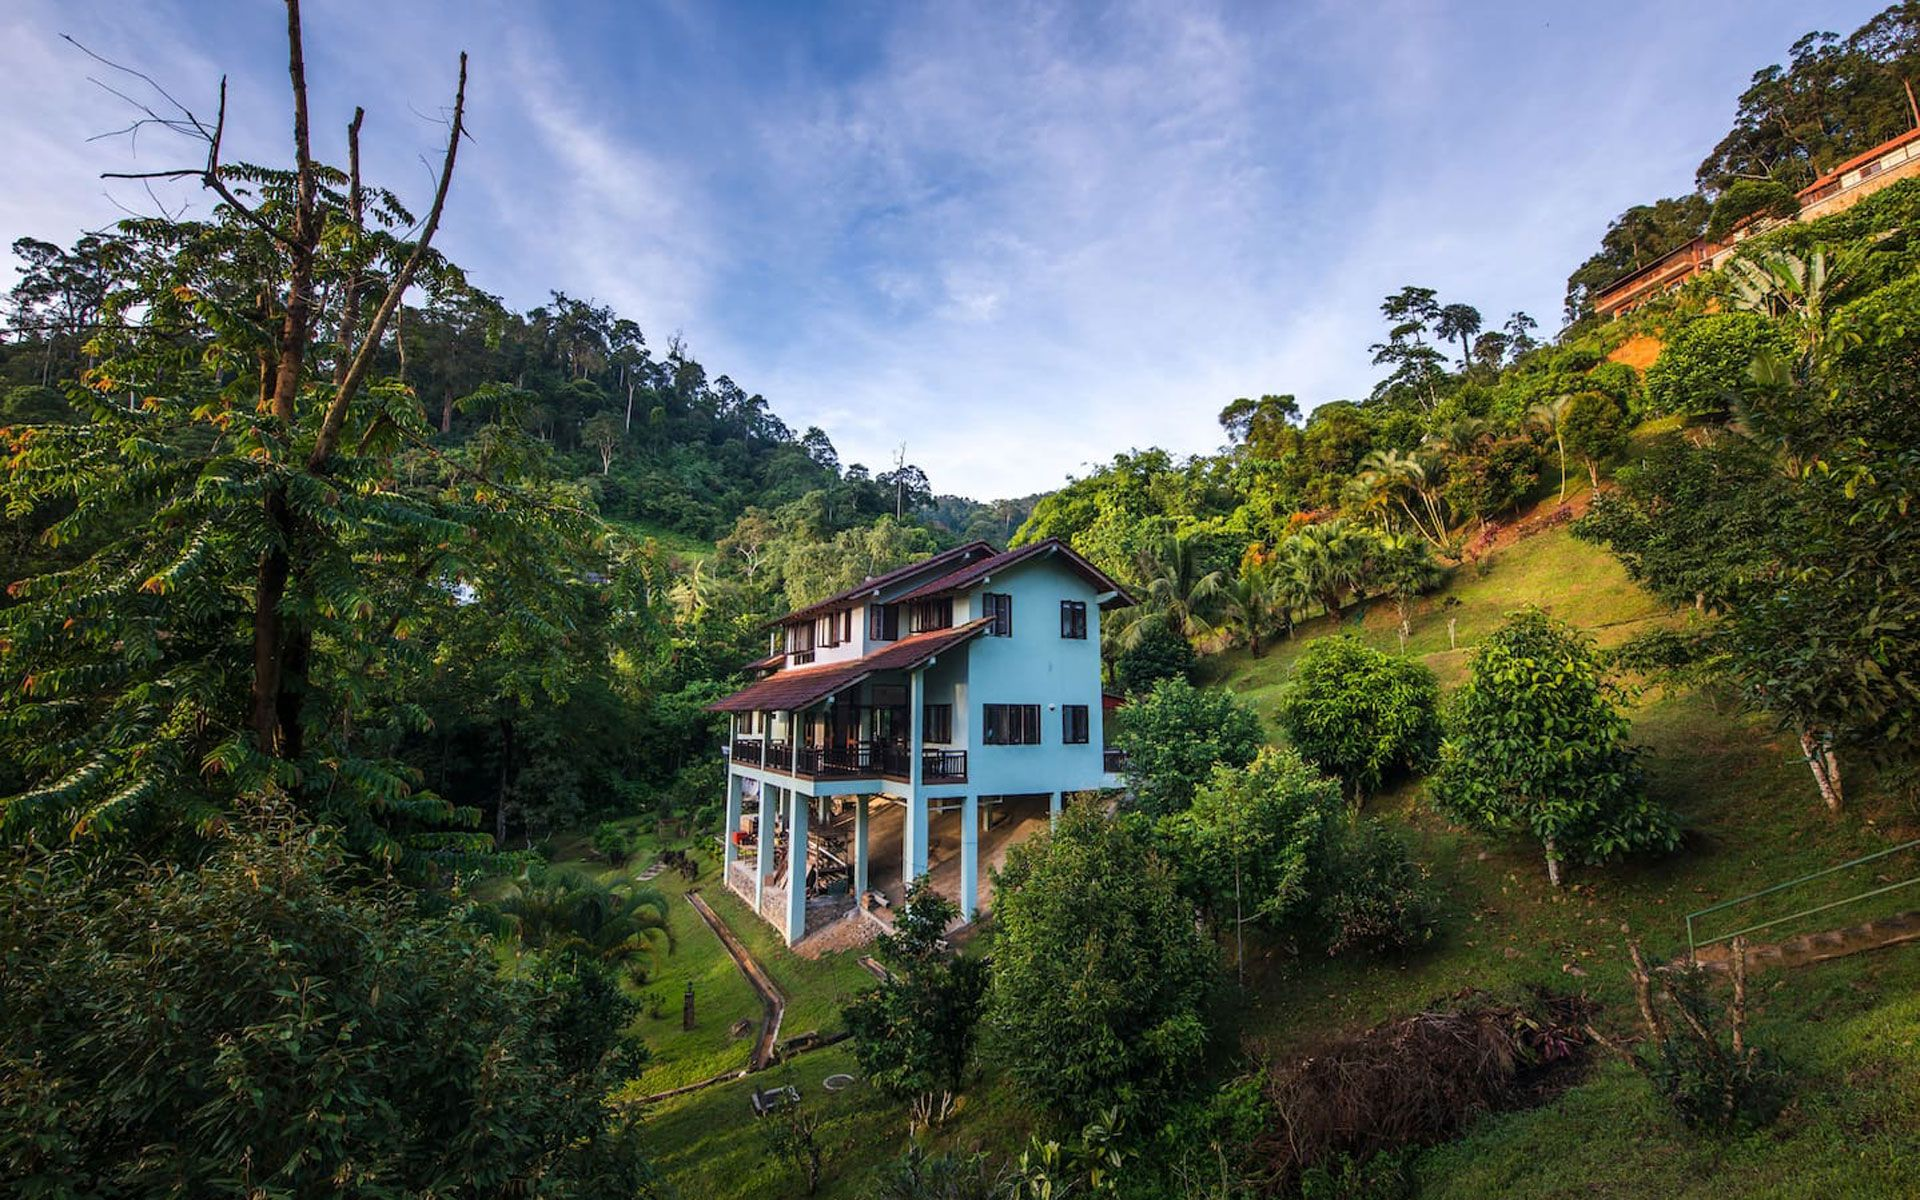 8 Posh Retreats On Air BnB To Live It Up In The Great Outdoors